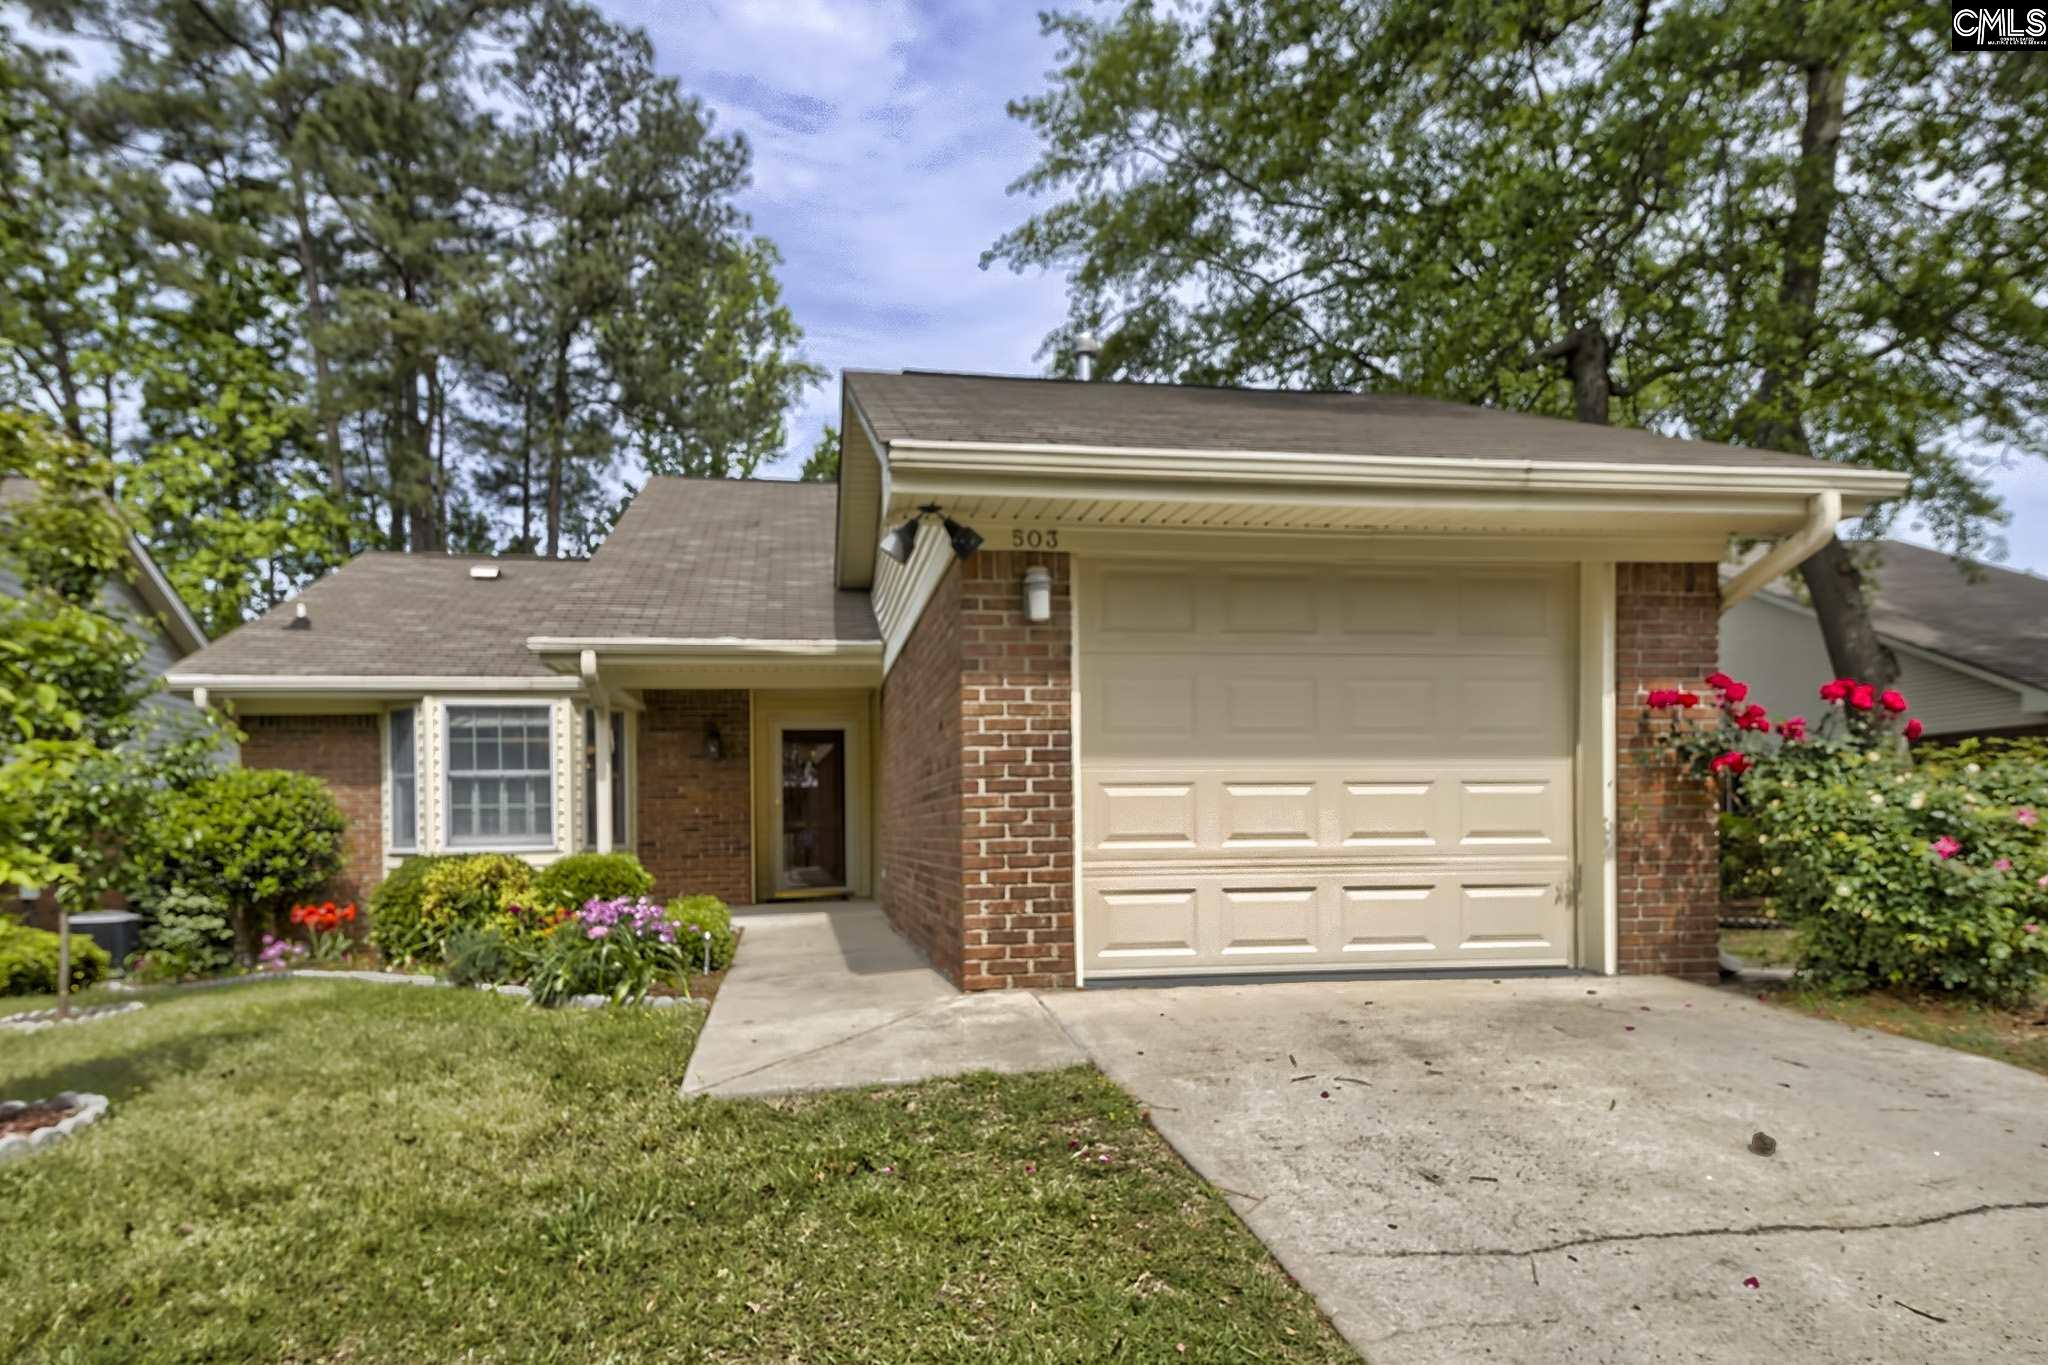 503 Jadetree West Columbia, SC 29169